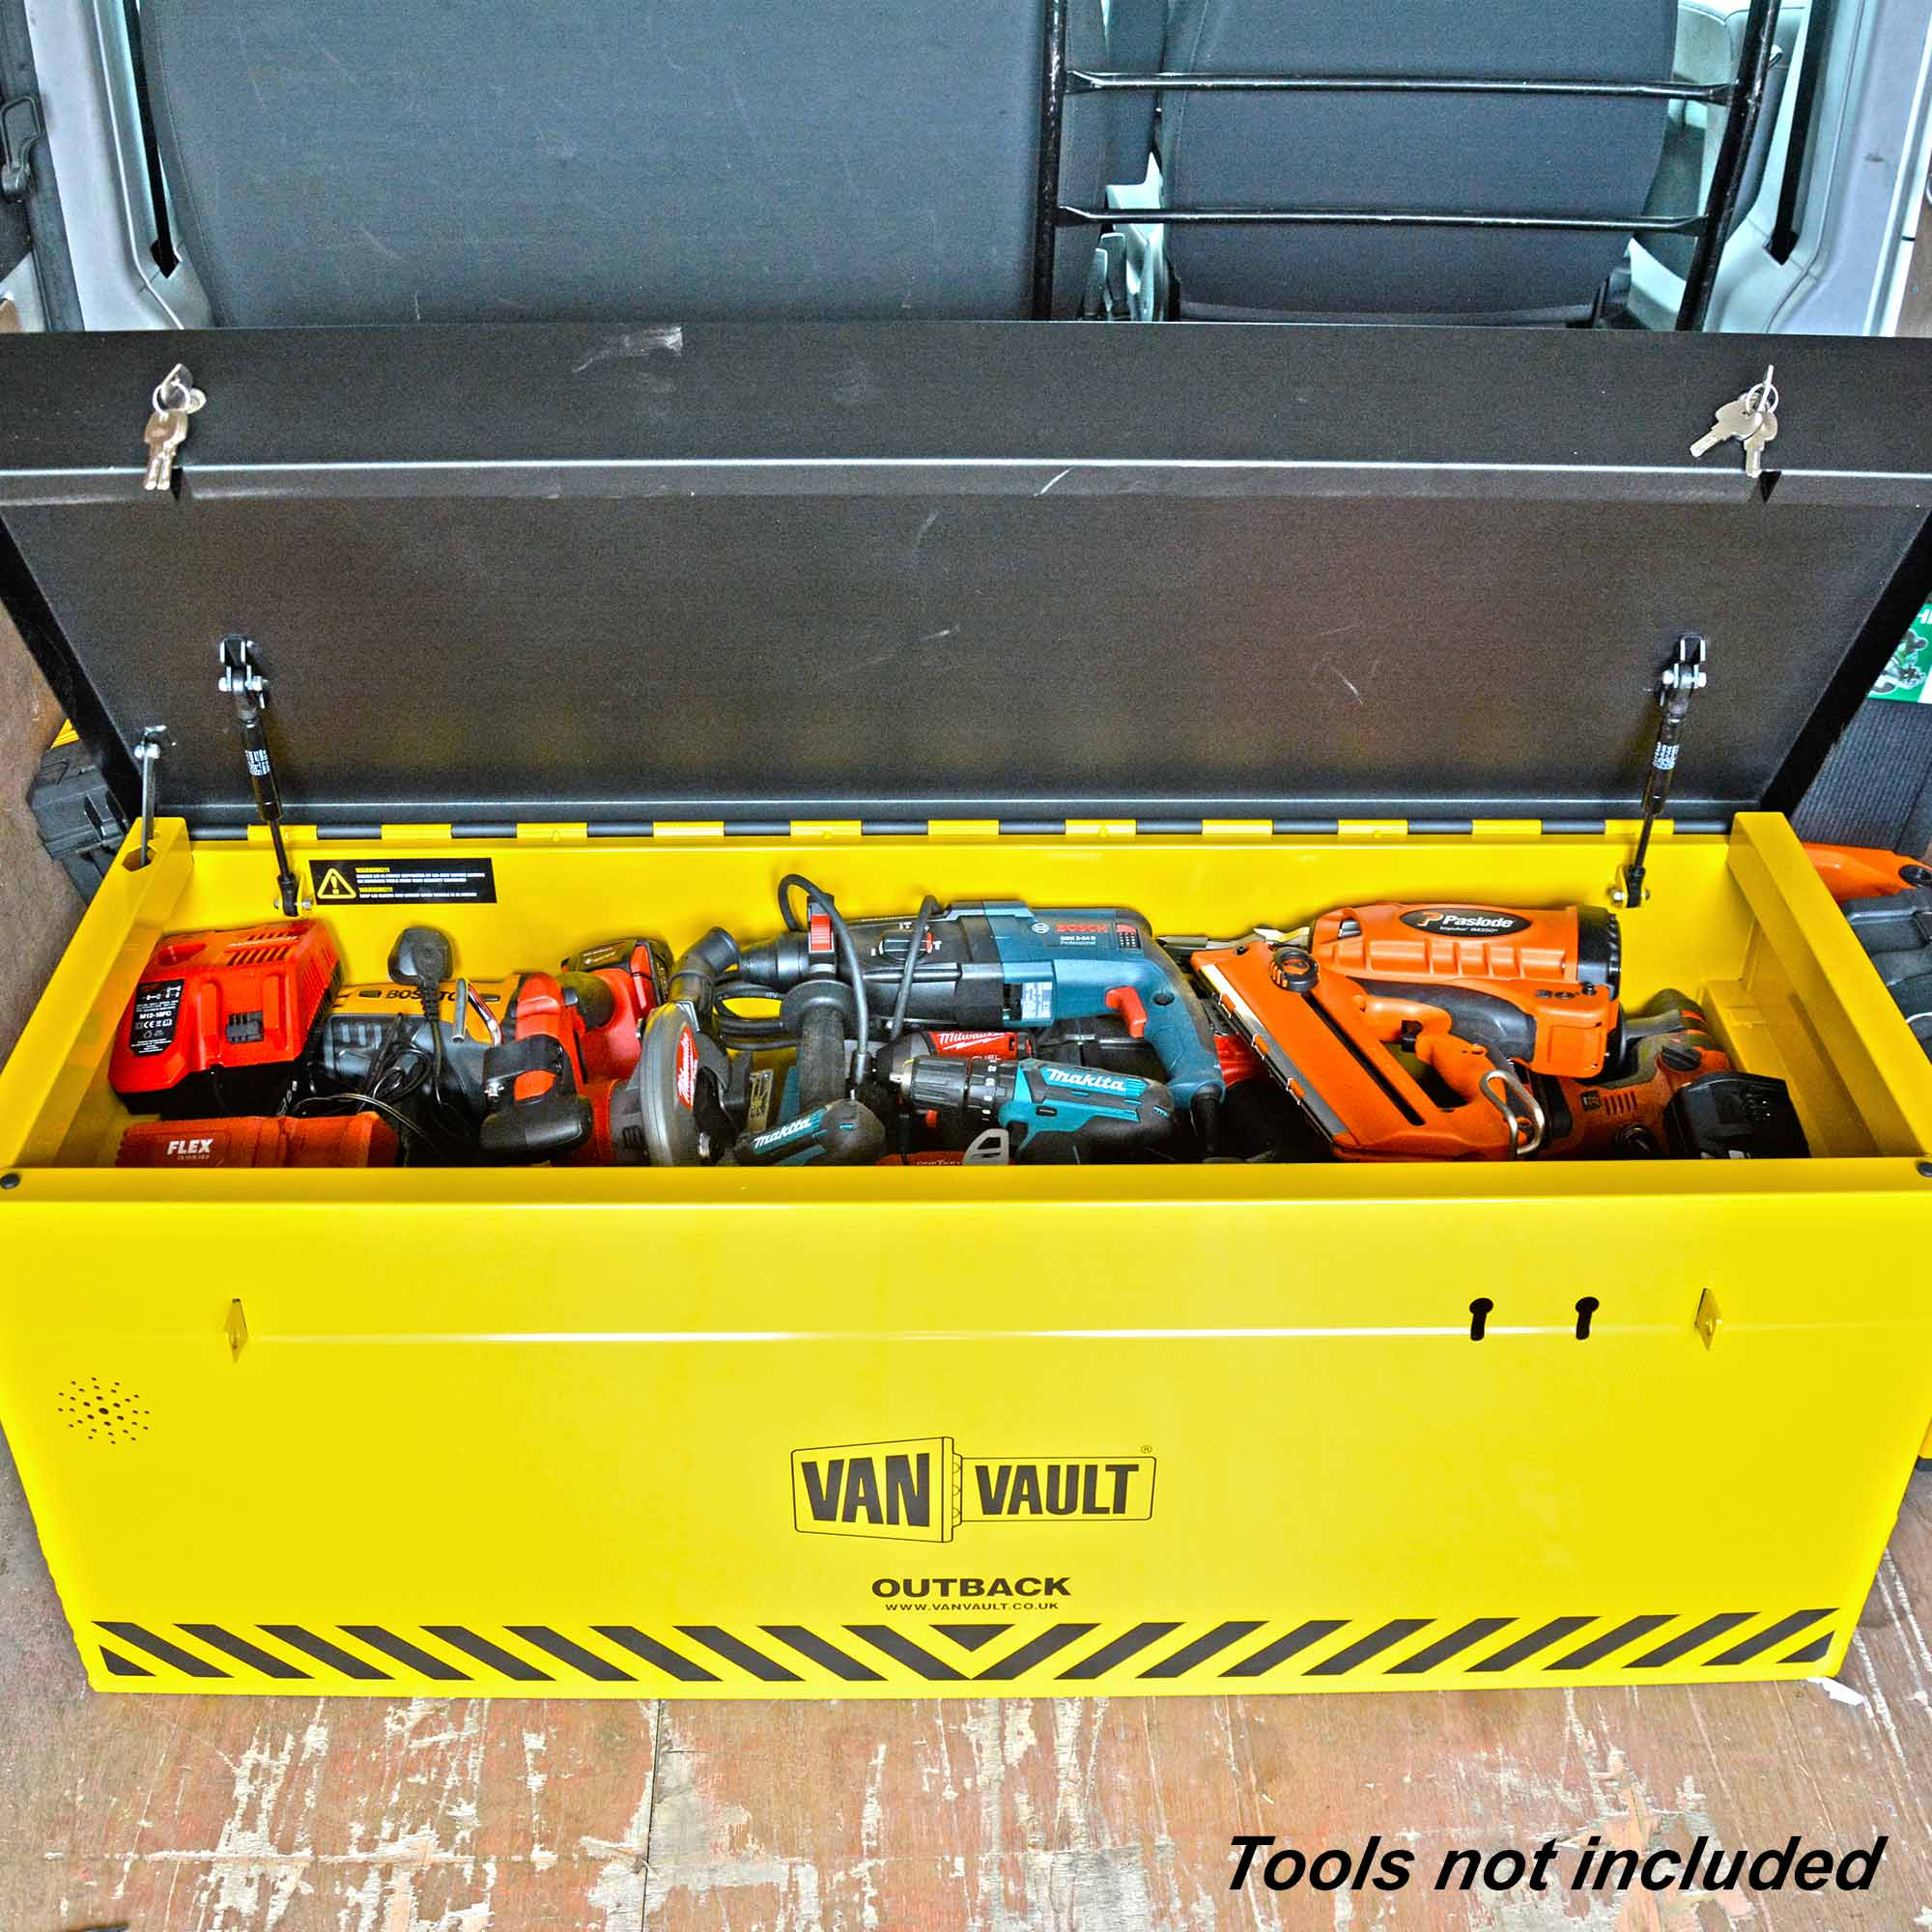 95bc4be872a730 ... Van Vault OUTBACK Van Vault Outback With Free Tool Box (Inside Box) Alt Image 2  ...